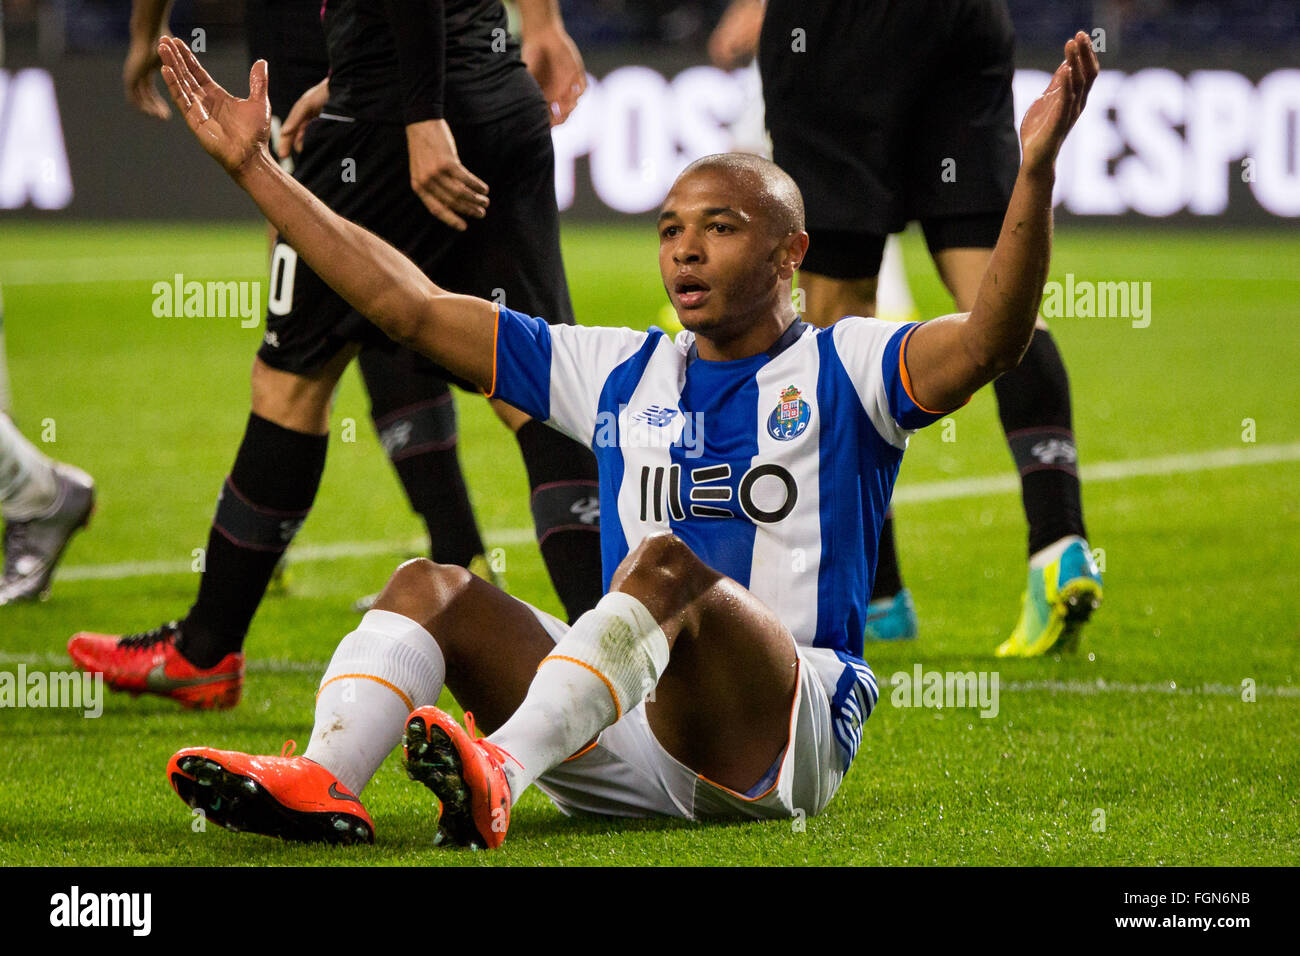 Dragon Stadium, Portugal. 21st February, 2016. FC Porto's player Brahimi during the Premier League 2015/16 match - Stock Image